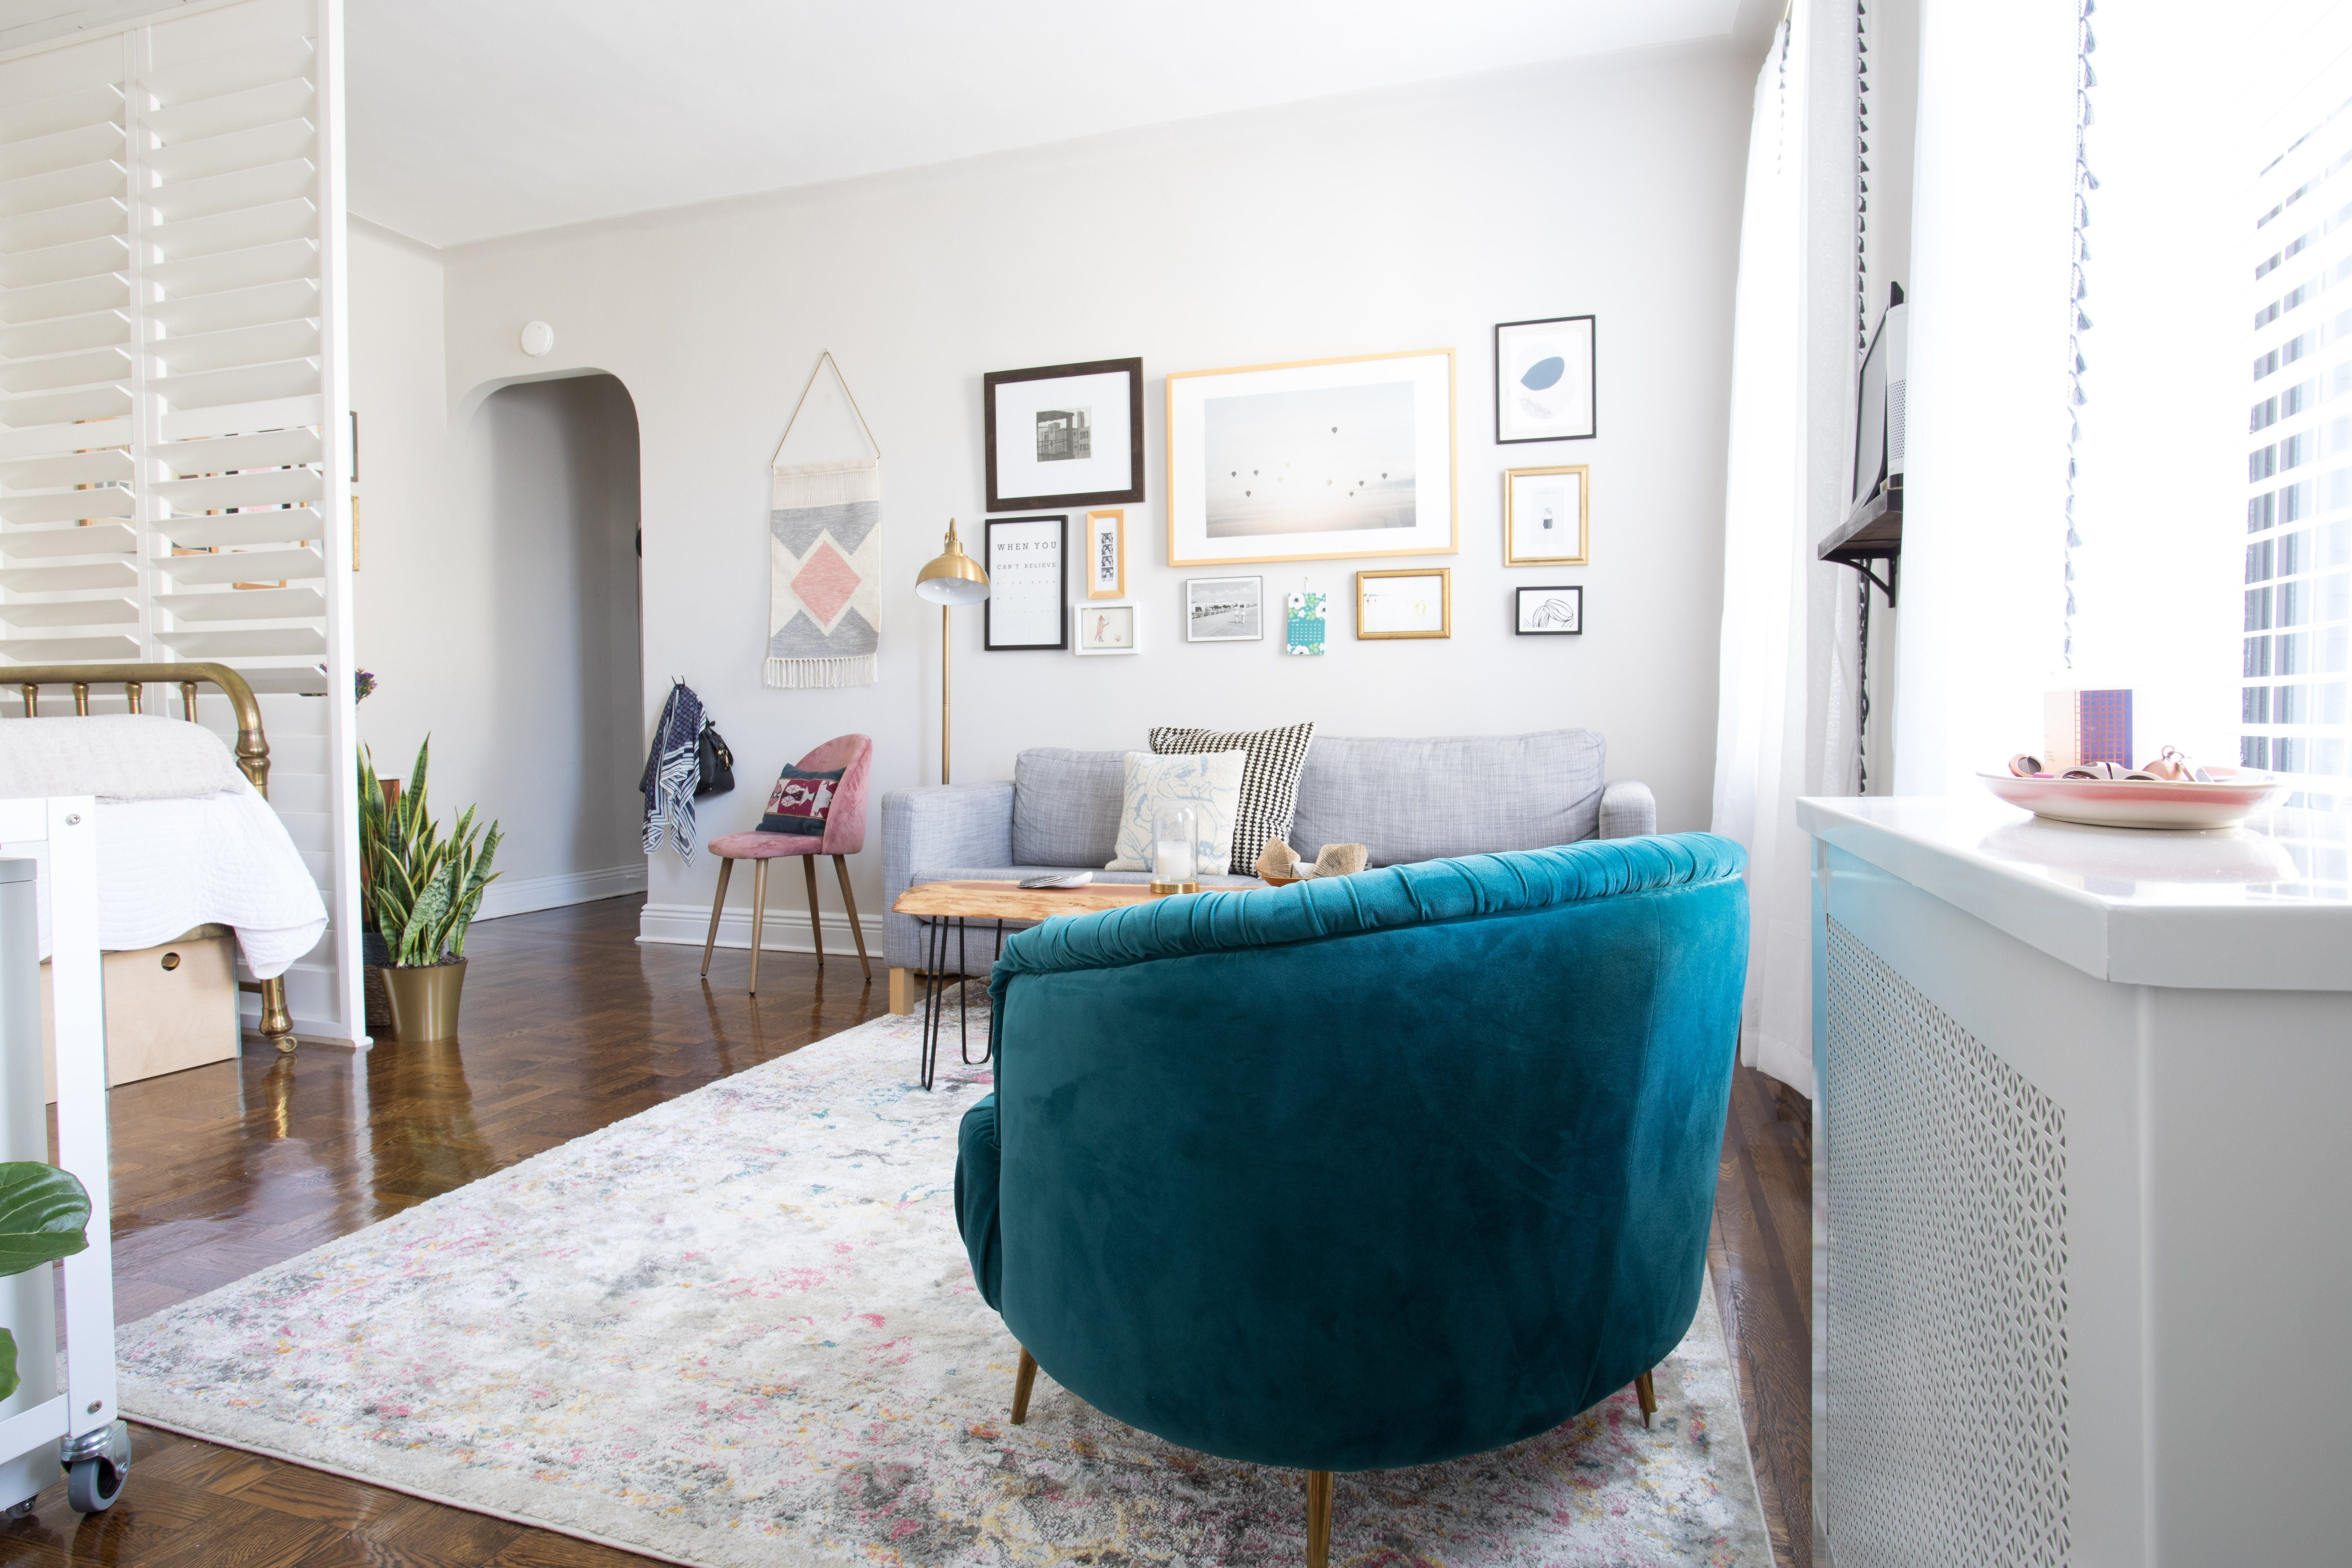 Creating Clear Vignettes Using Furniture And Art Helped To Define